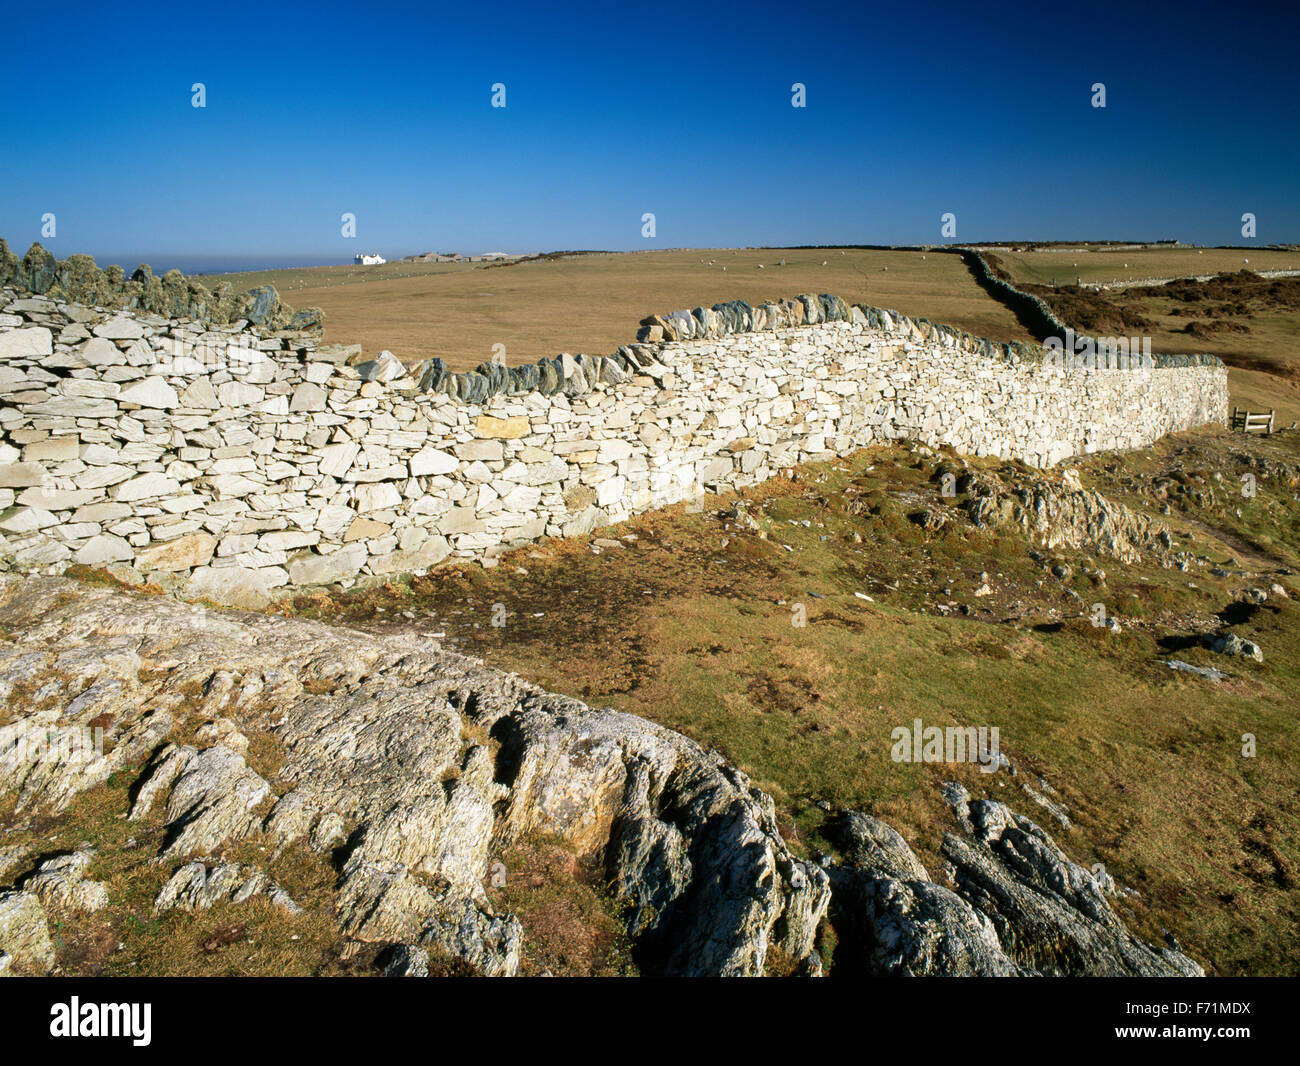 High drystone wall near the cliff edge at Rhoscolyn Head, Anglesey, North Wales, UK - Stock Image